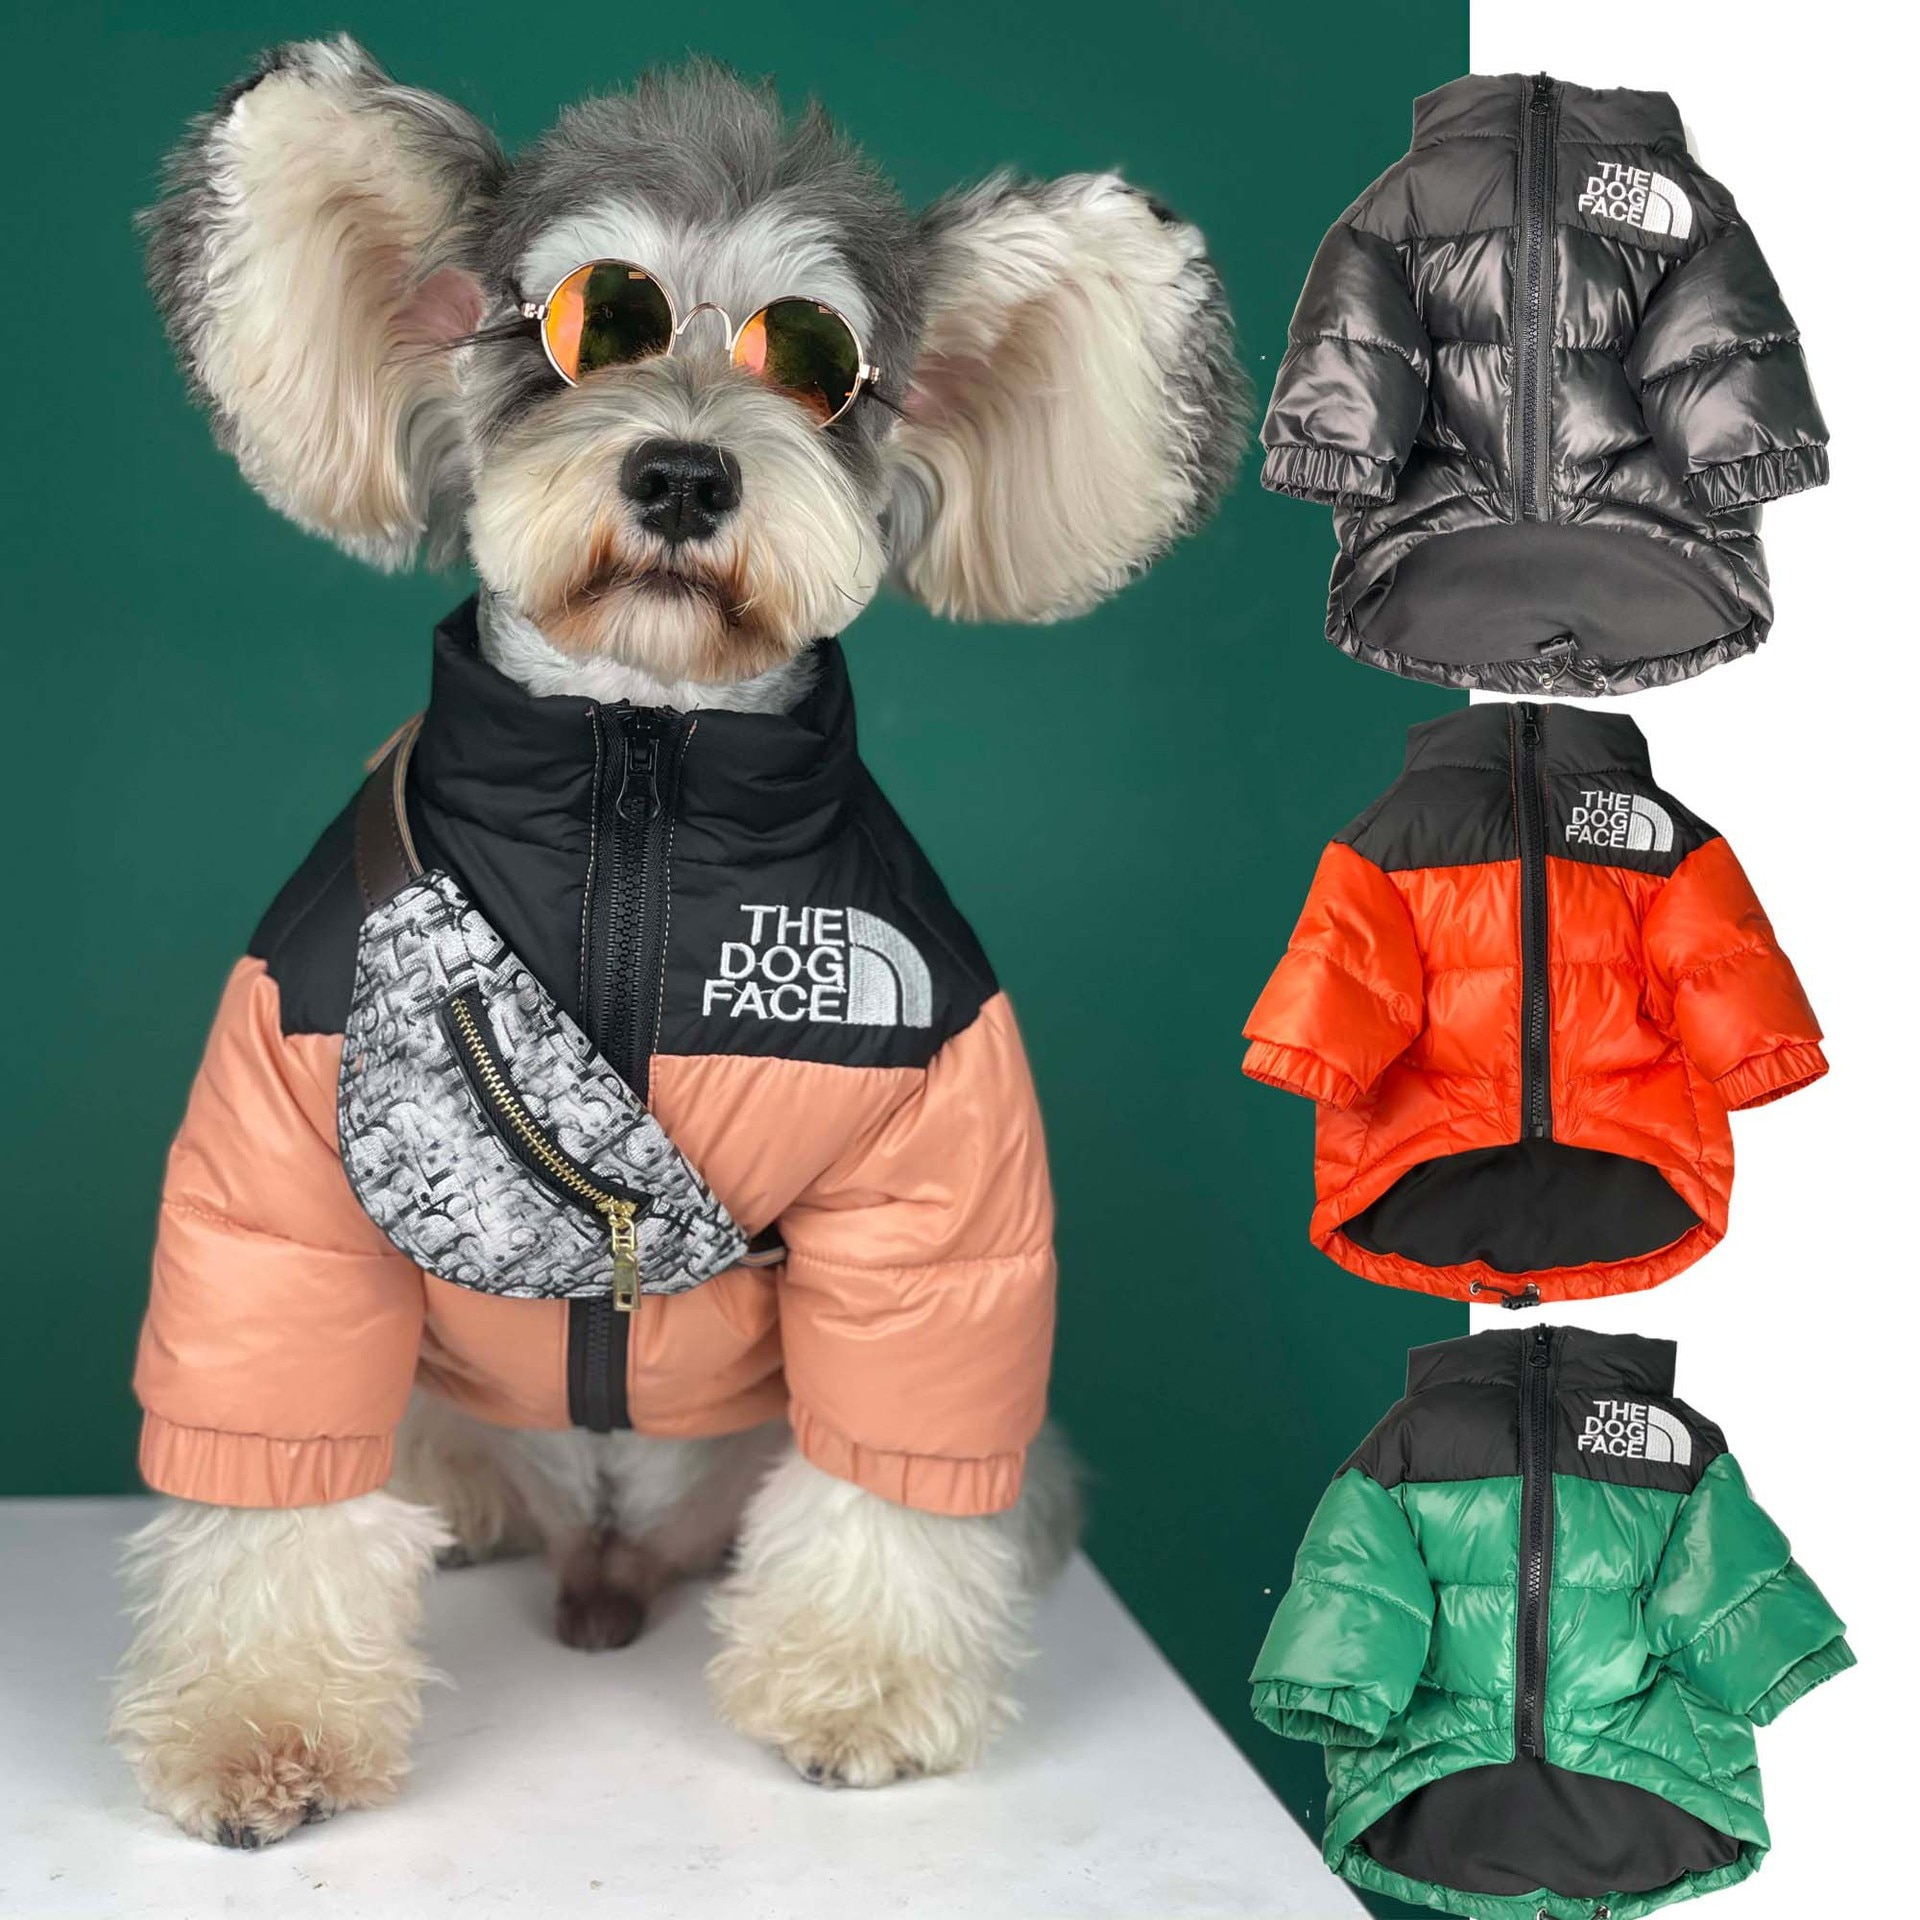 The Dog Face Winter Pet Dog Down Jacket Clothes for Small Medium Dogs,Warm Thick Stitching Pet Coat